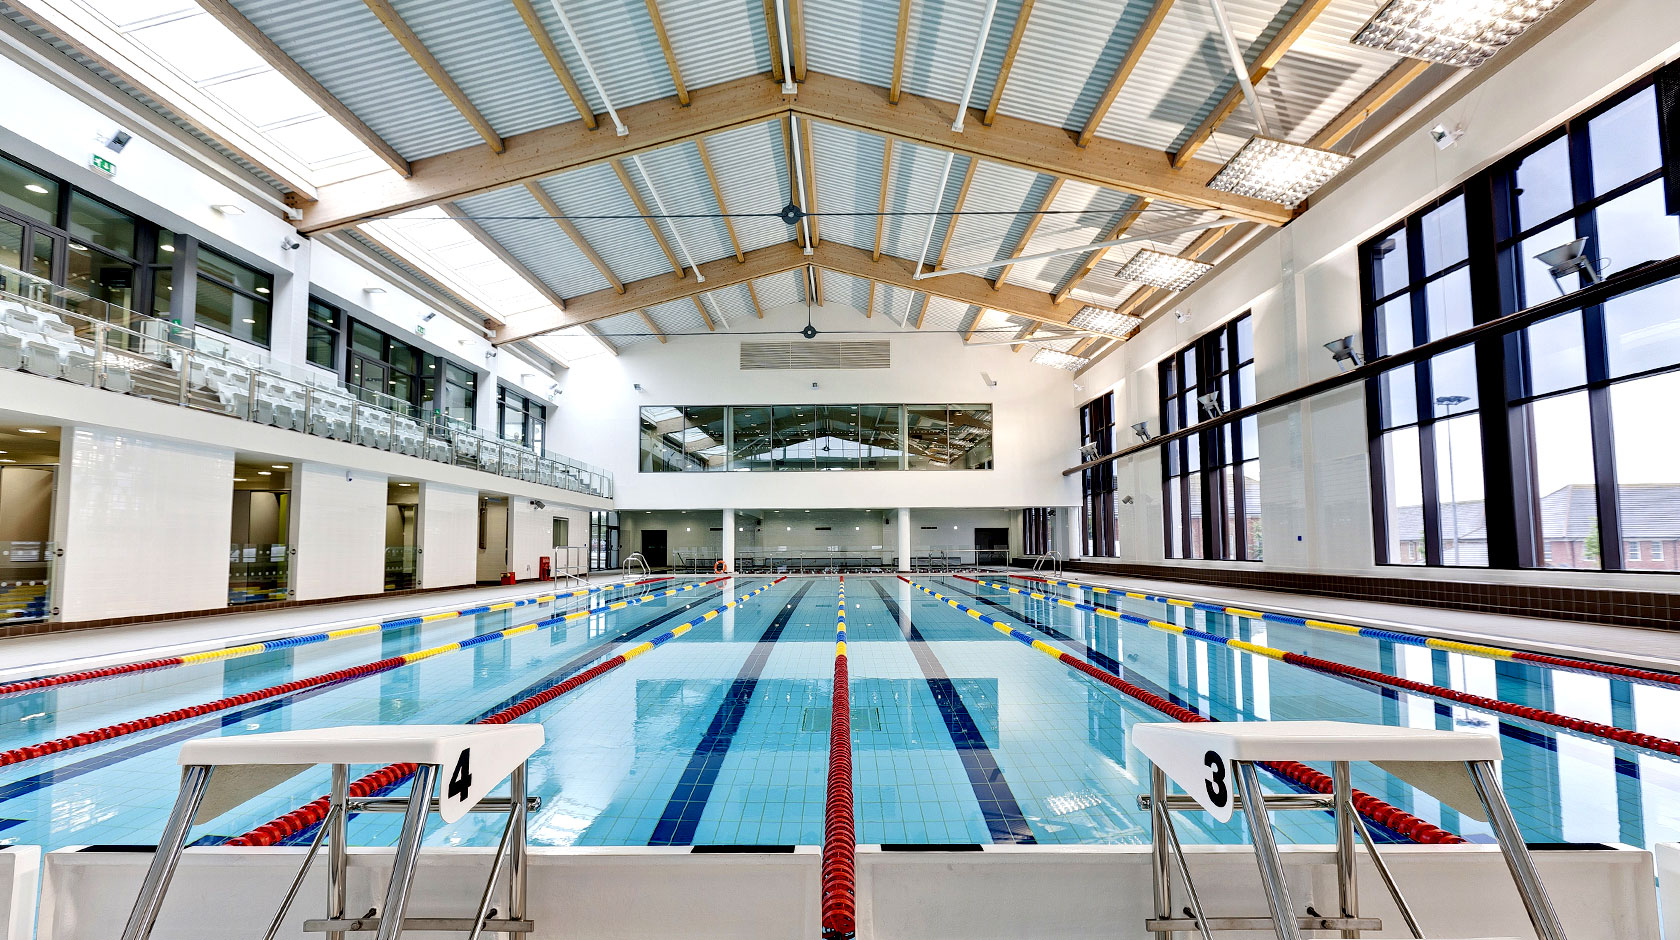 Thomas Hardye leisure Centre, Dorsetopened to the Public in 2012 - Associate Director & architect, for Dyer AssociatesA 25m community swimming pool, learner pool, gym and fitness studios in Dorchester, Dorset